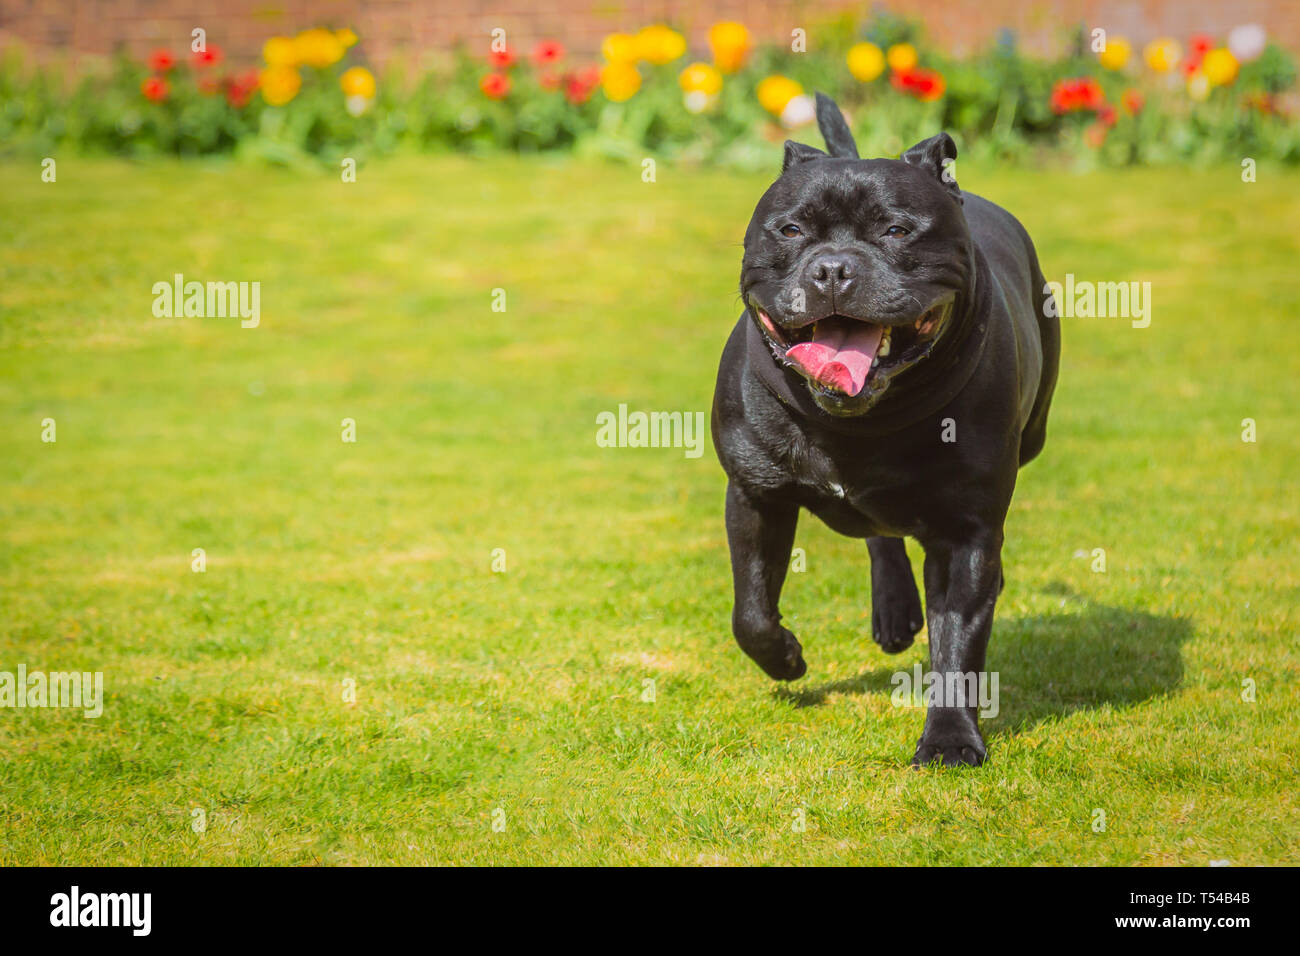 Happy black Staffordshire Bull Terrier dog running on grass on a sunny day with a big smile on his face and tulips in the background - Stock Image